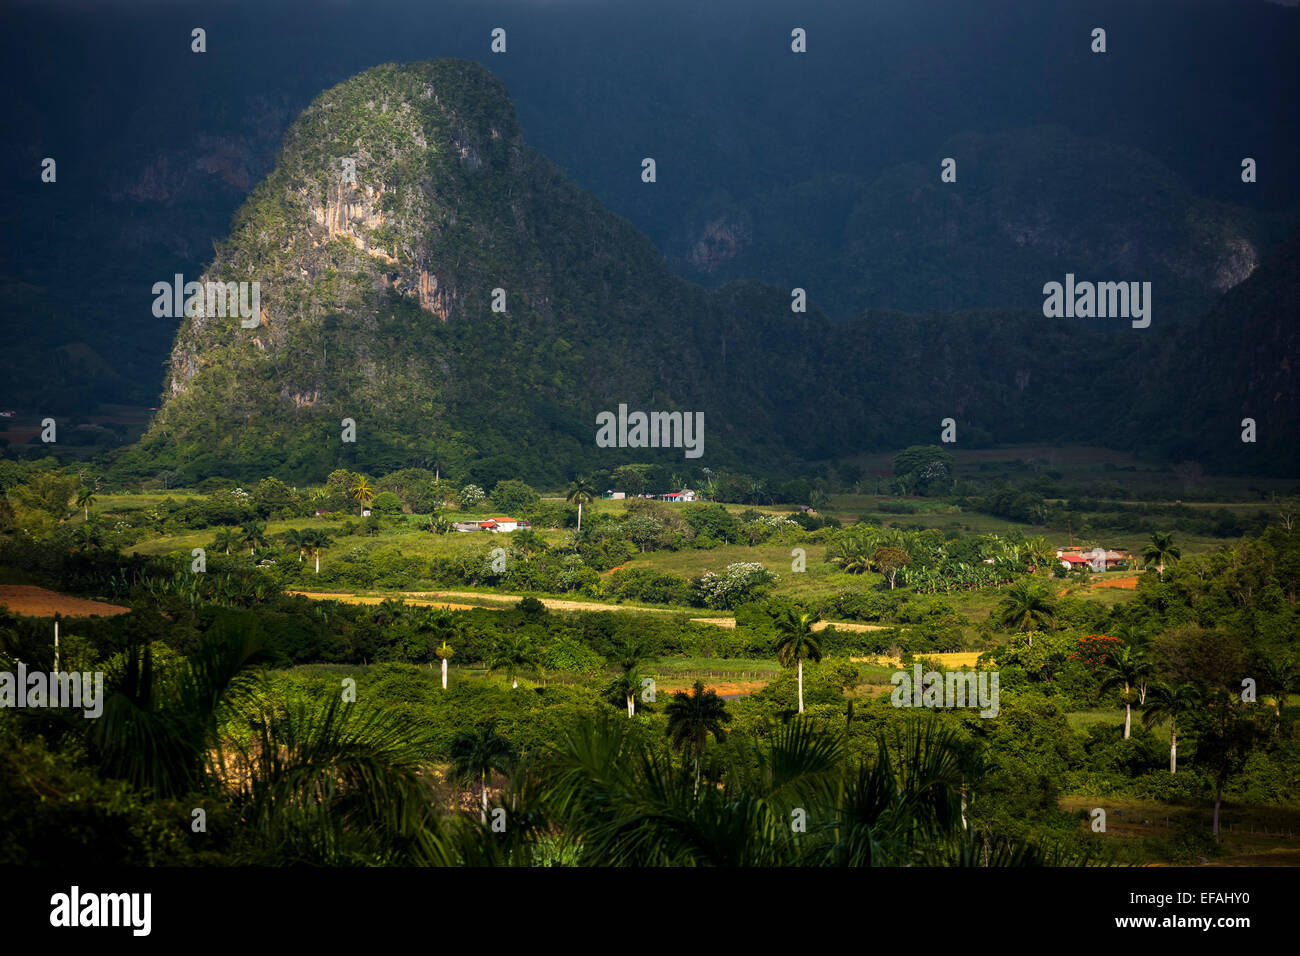 Tobacco fields and the Mogotes karst mountains, Valle de Viñales, Viñales, Pinar del Rio Province, Cuba - Stock Image